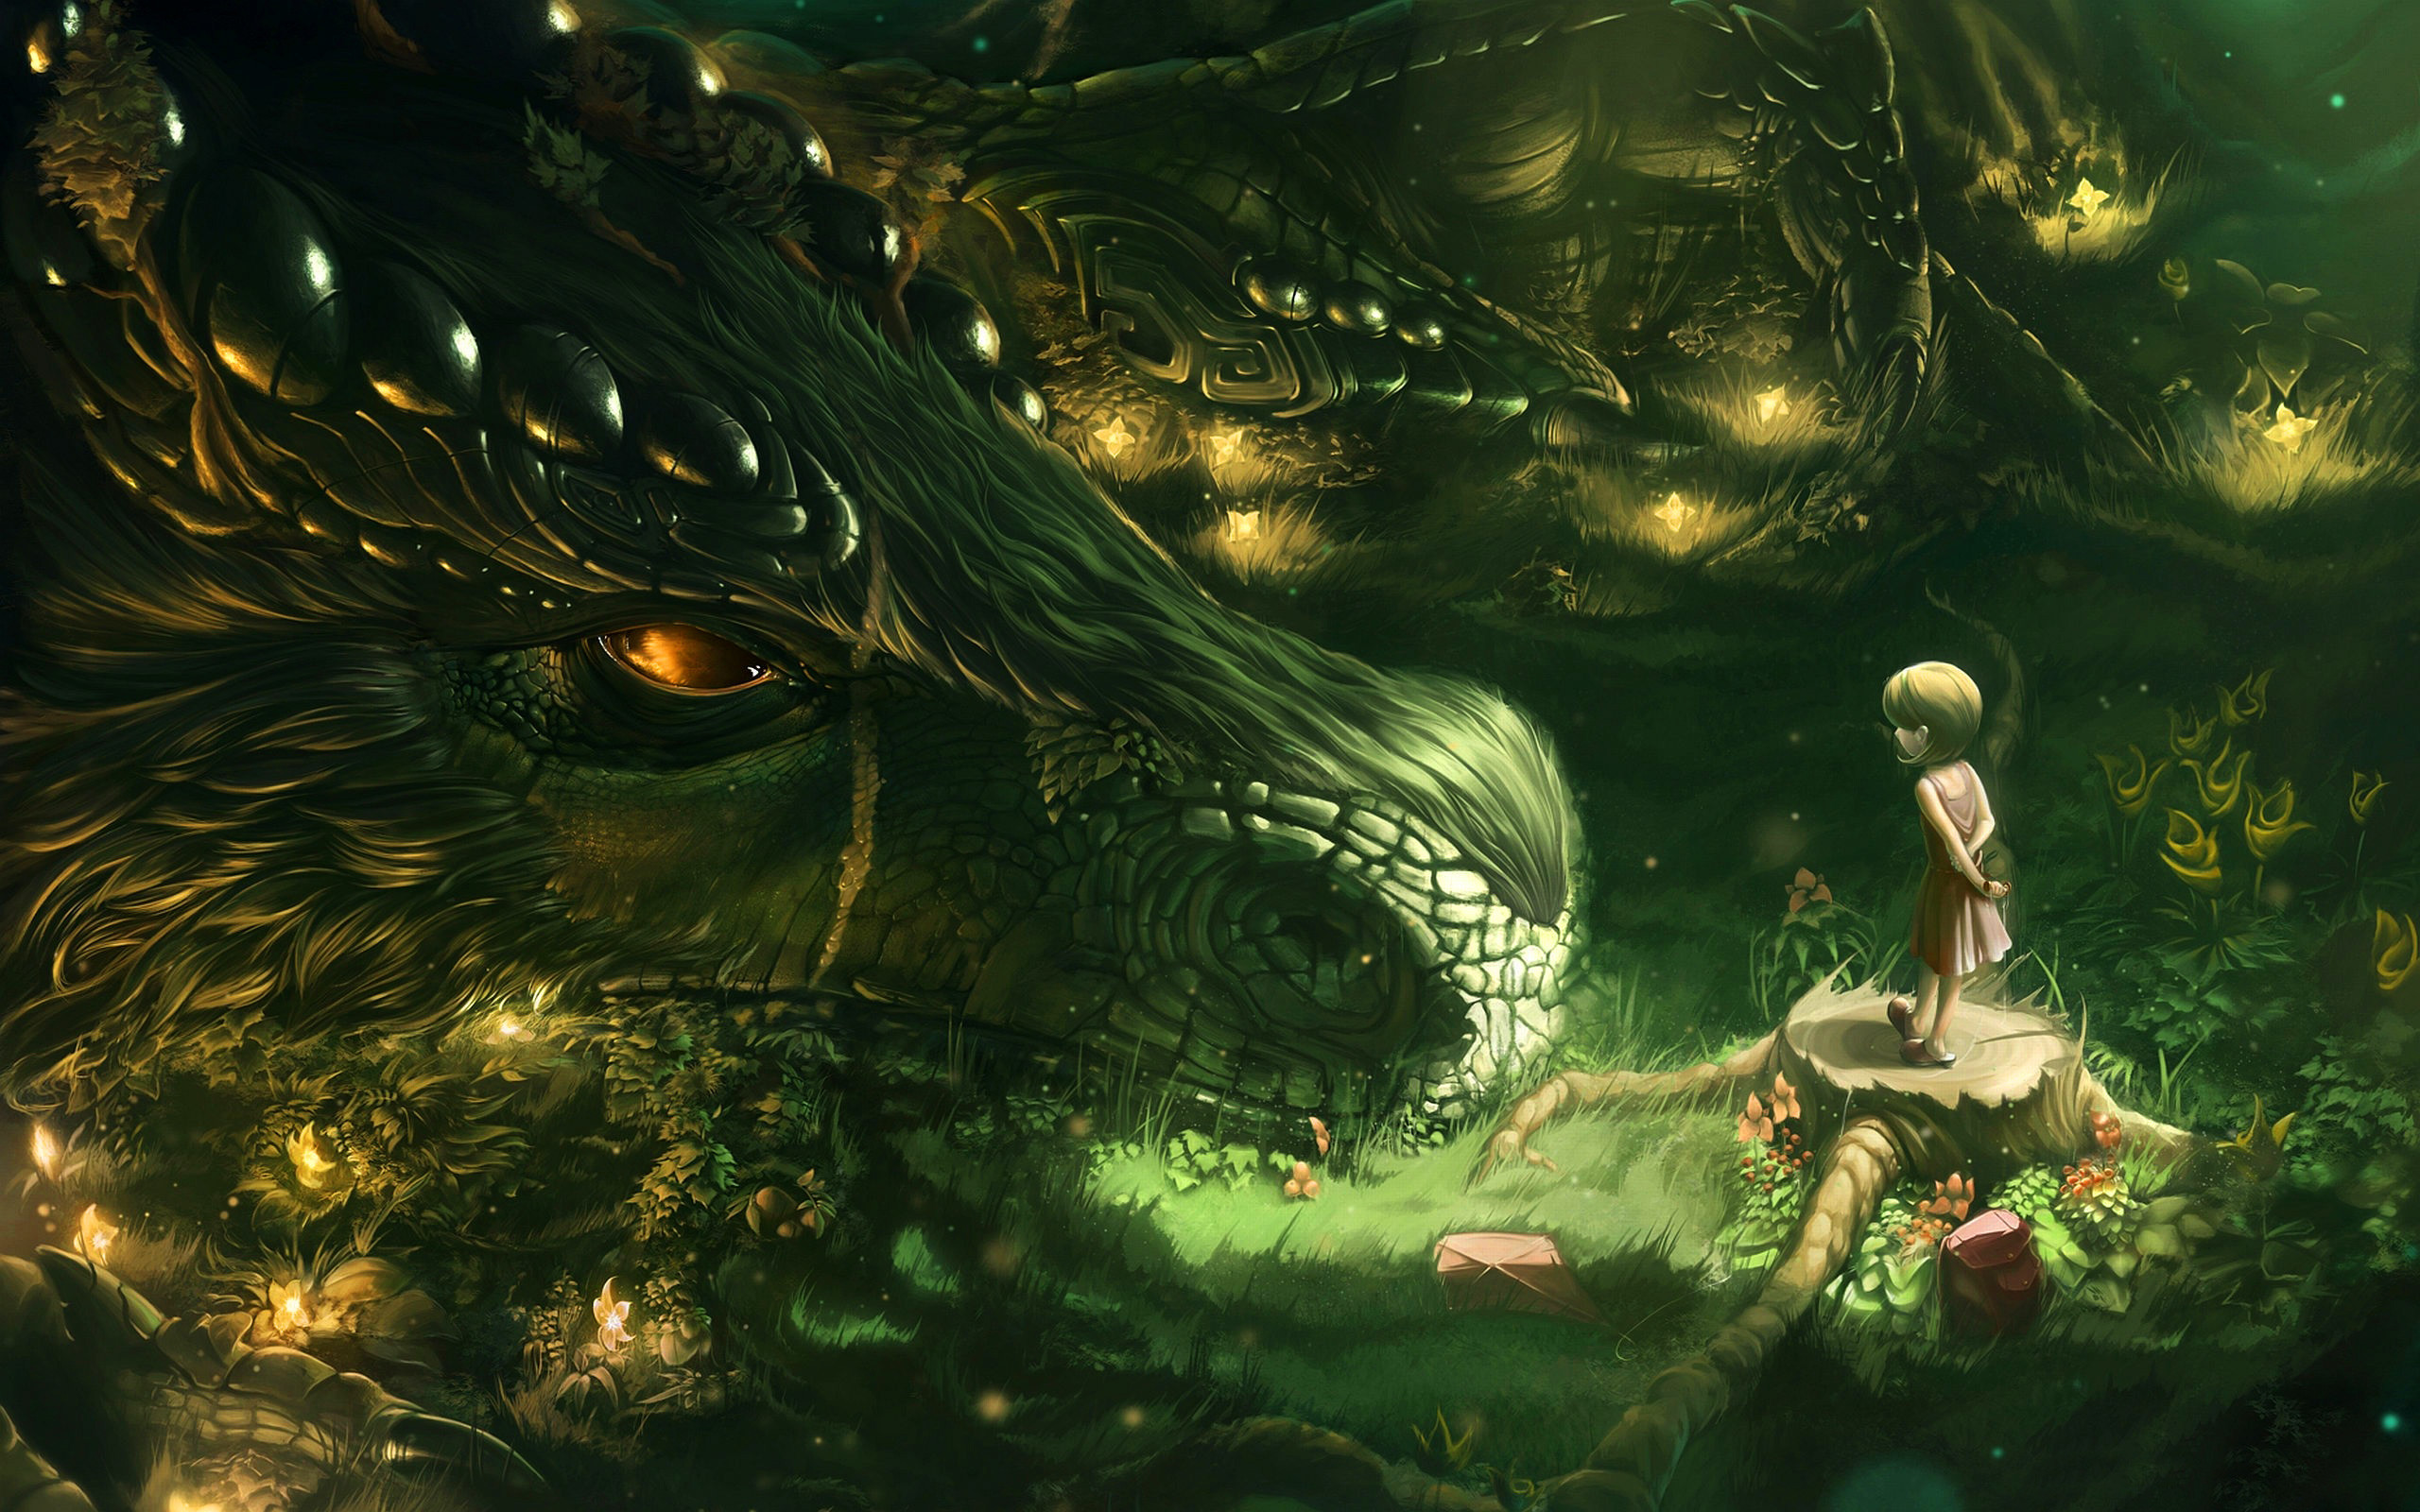 Res: 2560x1600, HD Wallpaper | Background Image ID:117378